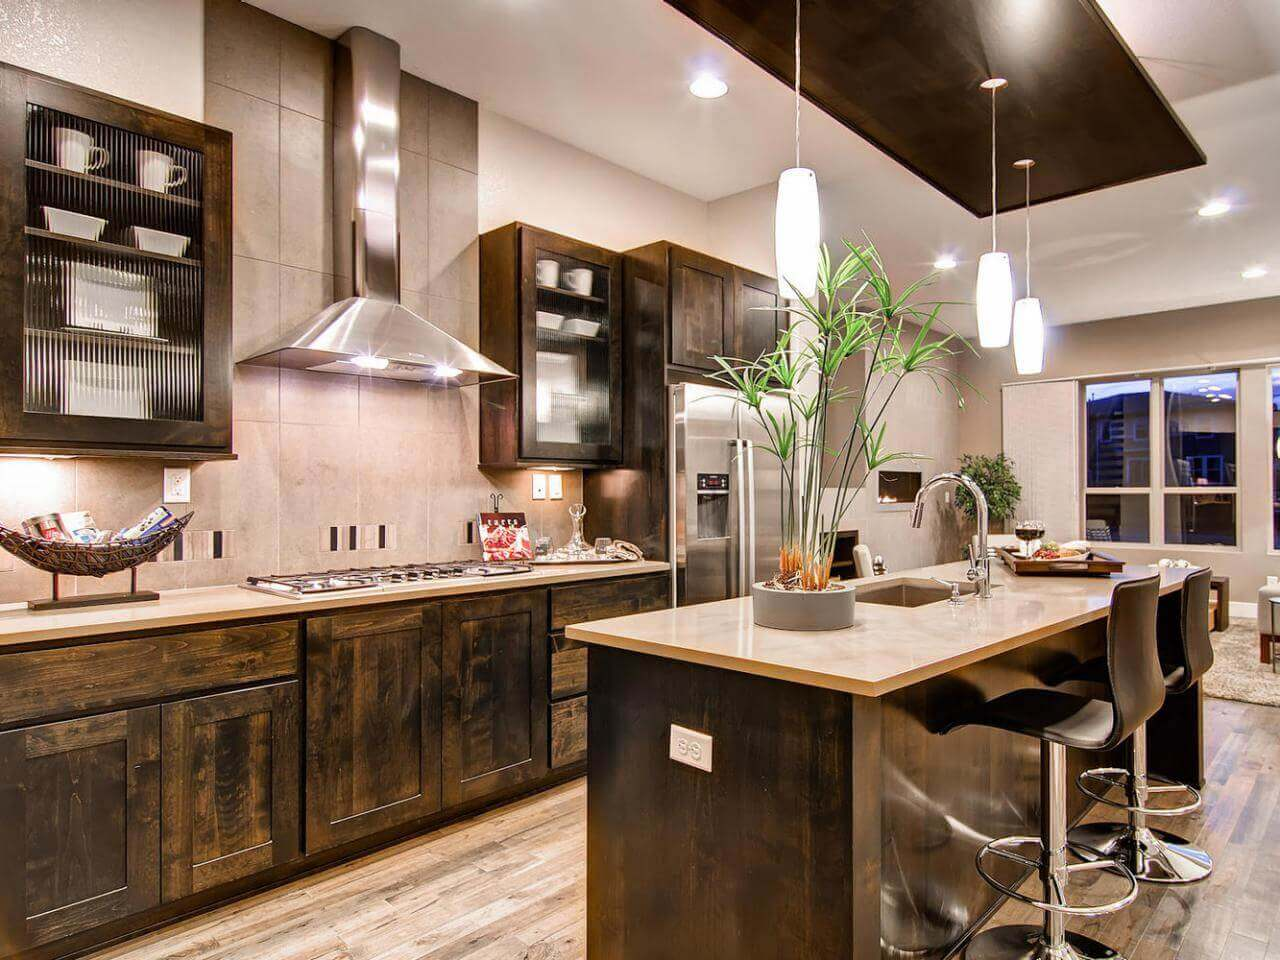 Faced with rustic multiple tone wood base, the island in this modern kitchen with rustic elements lend inspiration from the stain tone throughout the remainder of the room. Granite countertops on the lower cabinets finished in a shade of stain wood that pulls in elements of the outdoors inside